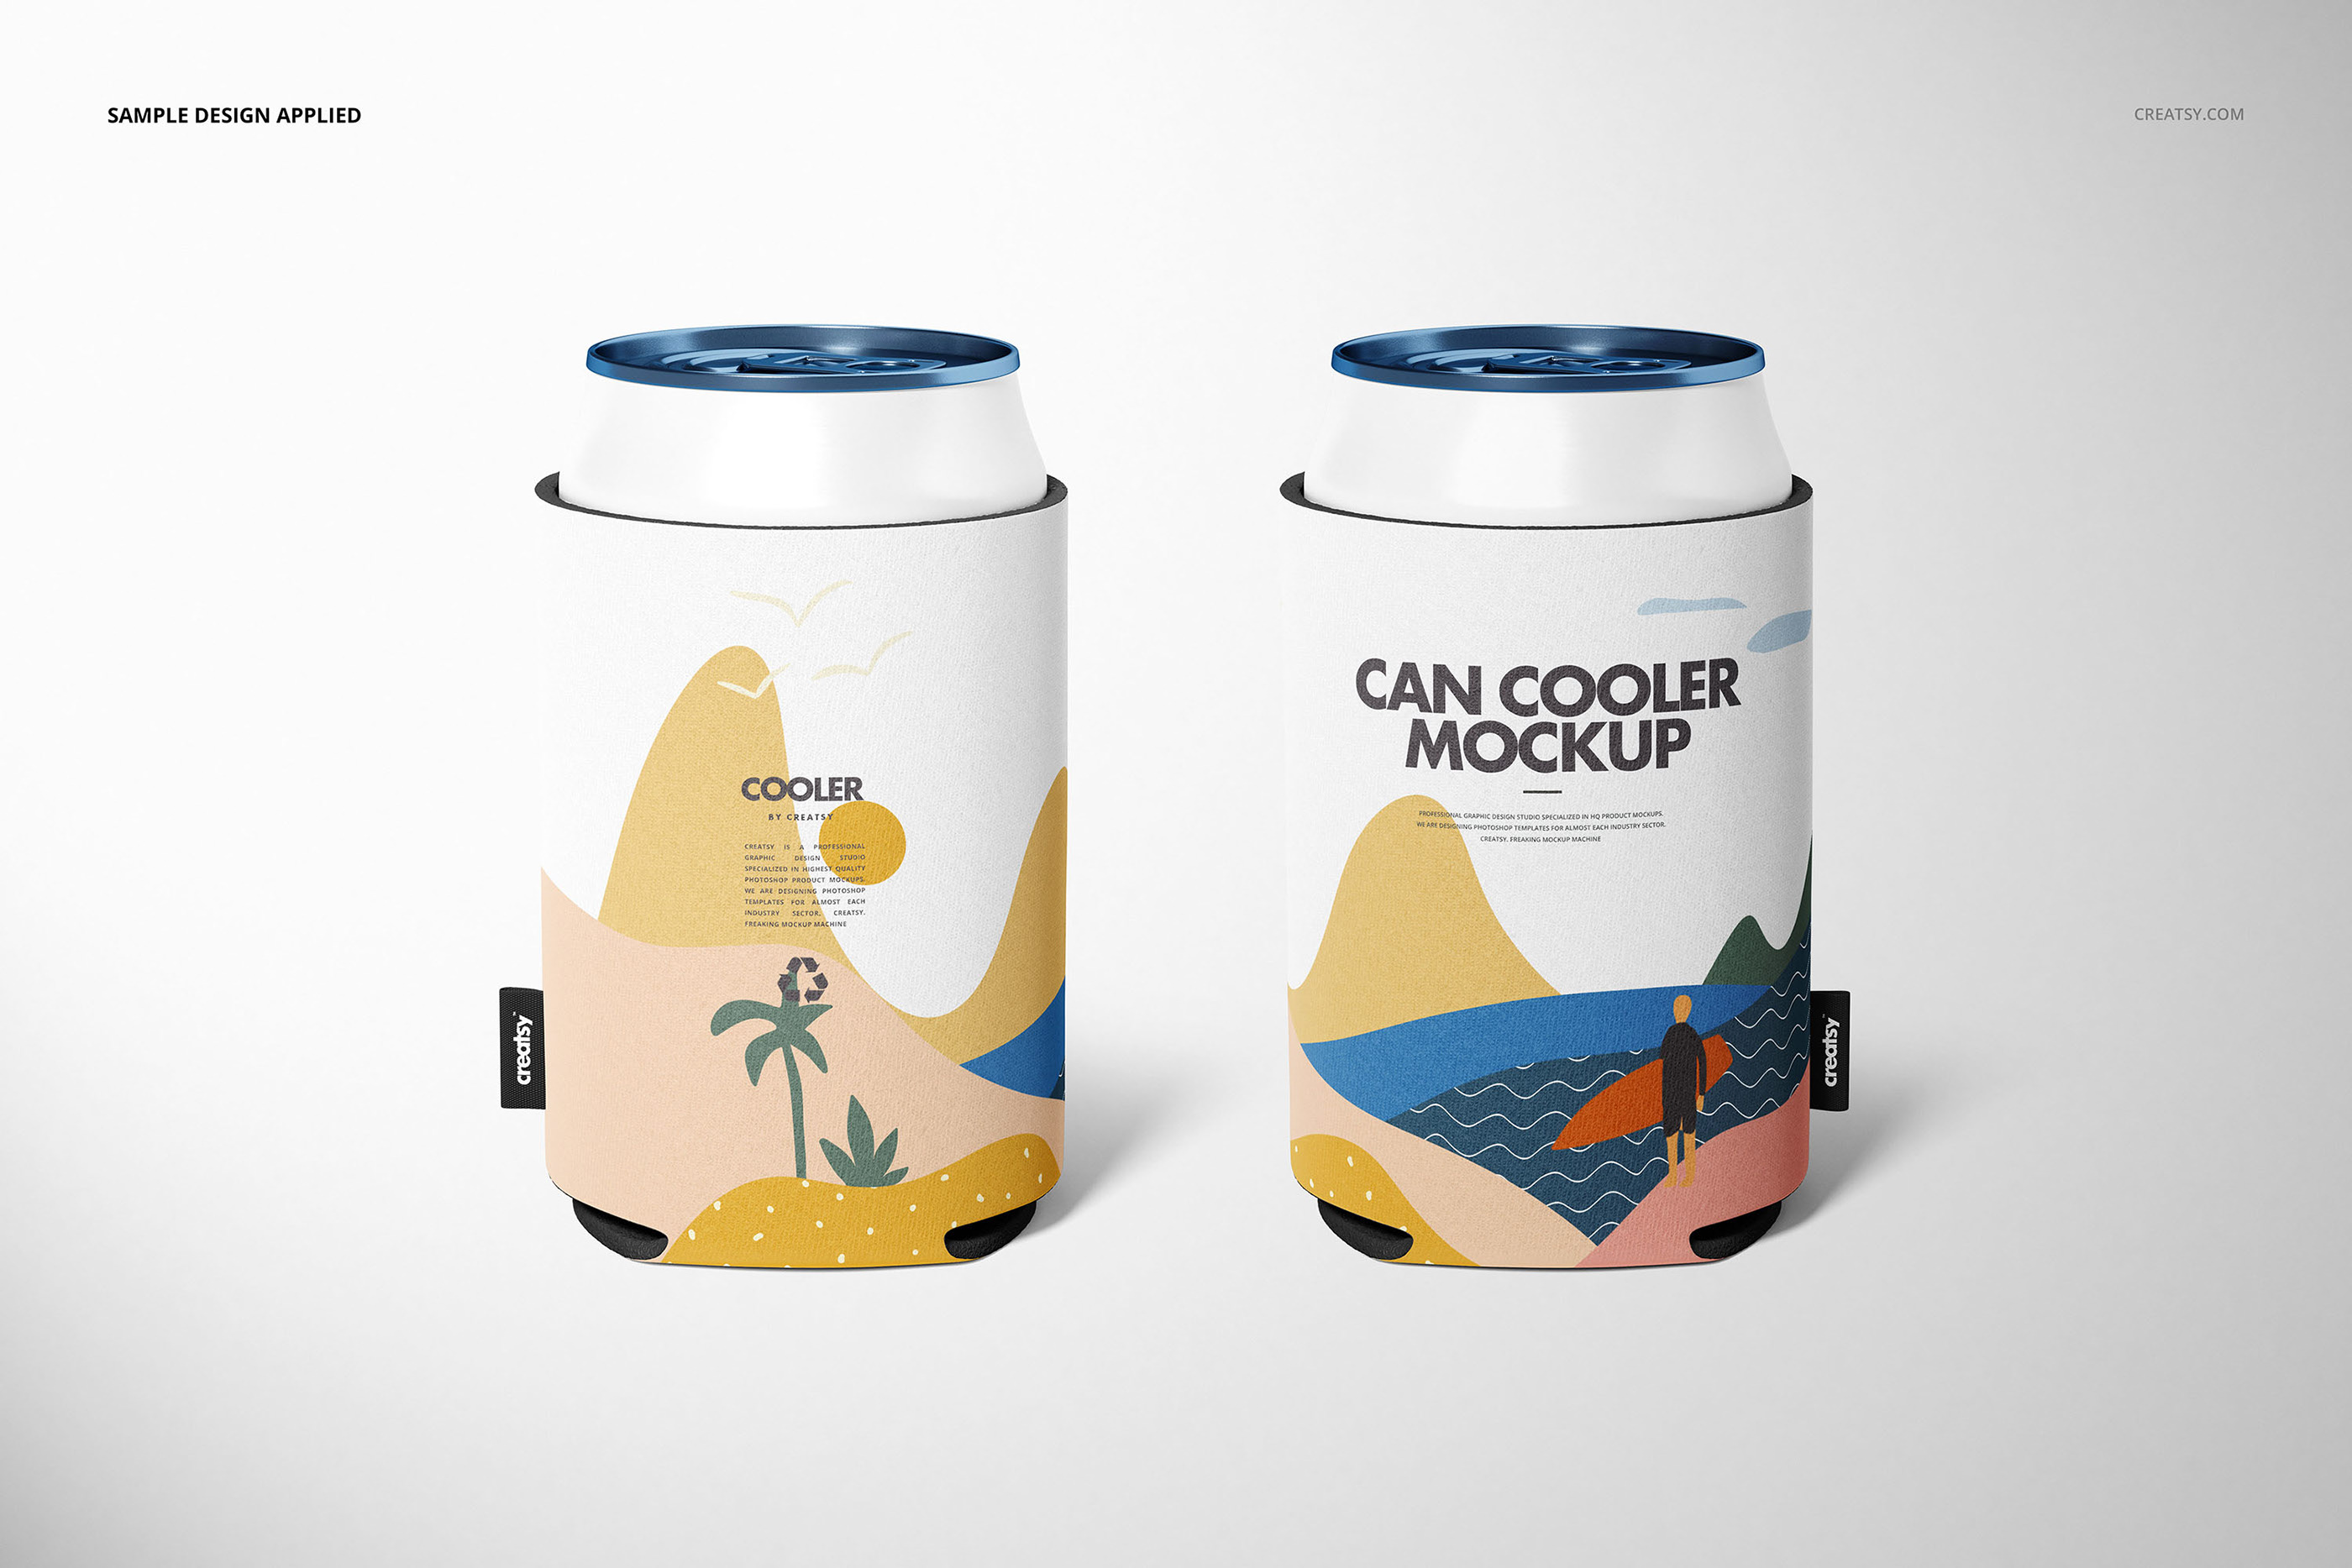 Download Can Cooler Mockup Best All Mockup Psd Create Your Diy Projects Using Your Cricut Explore Silhouette And More The Free Cut Files Include Psd Svg Dxf Eps And Png Files